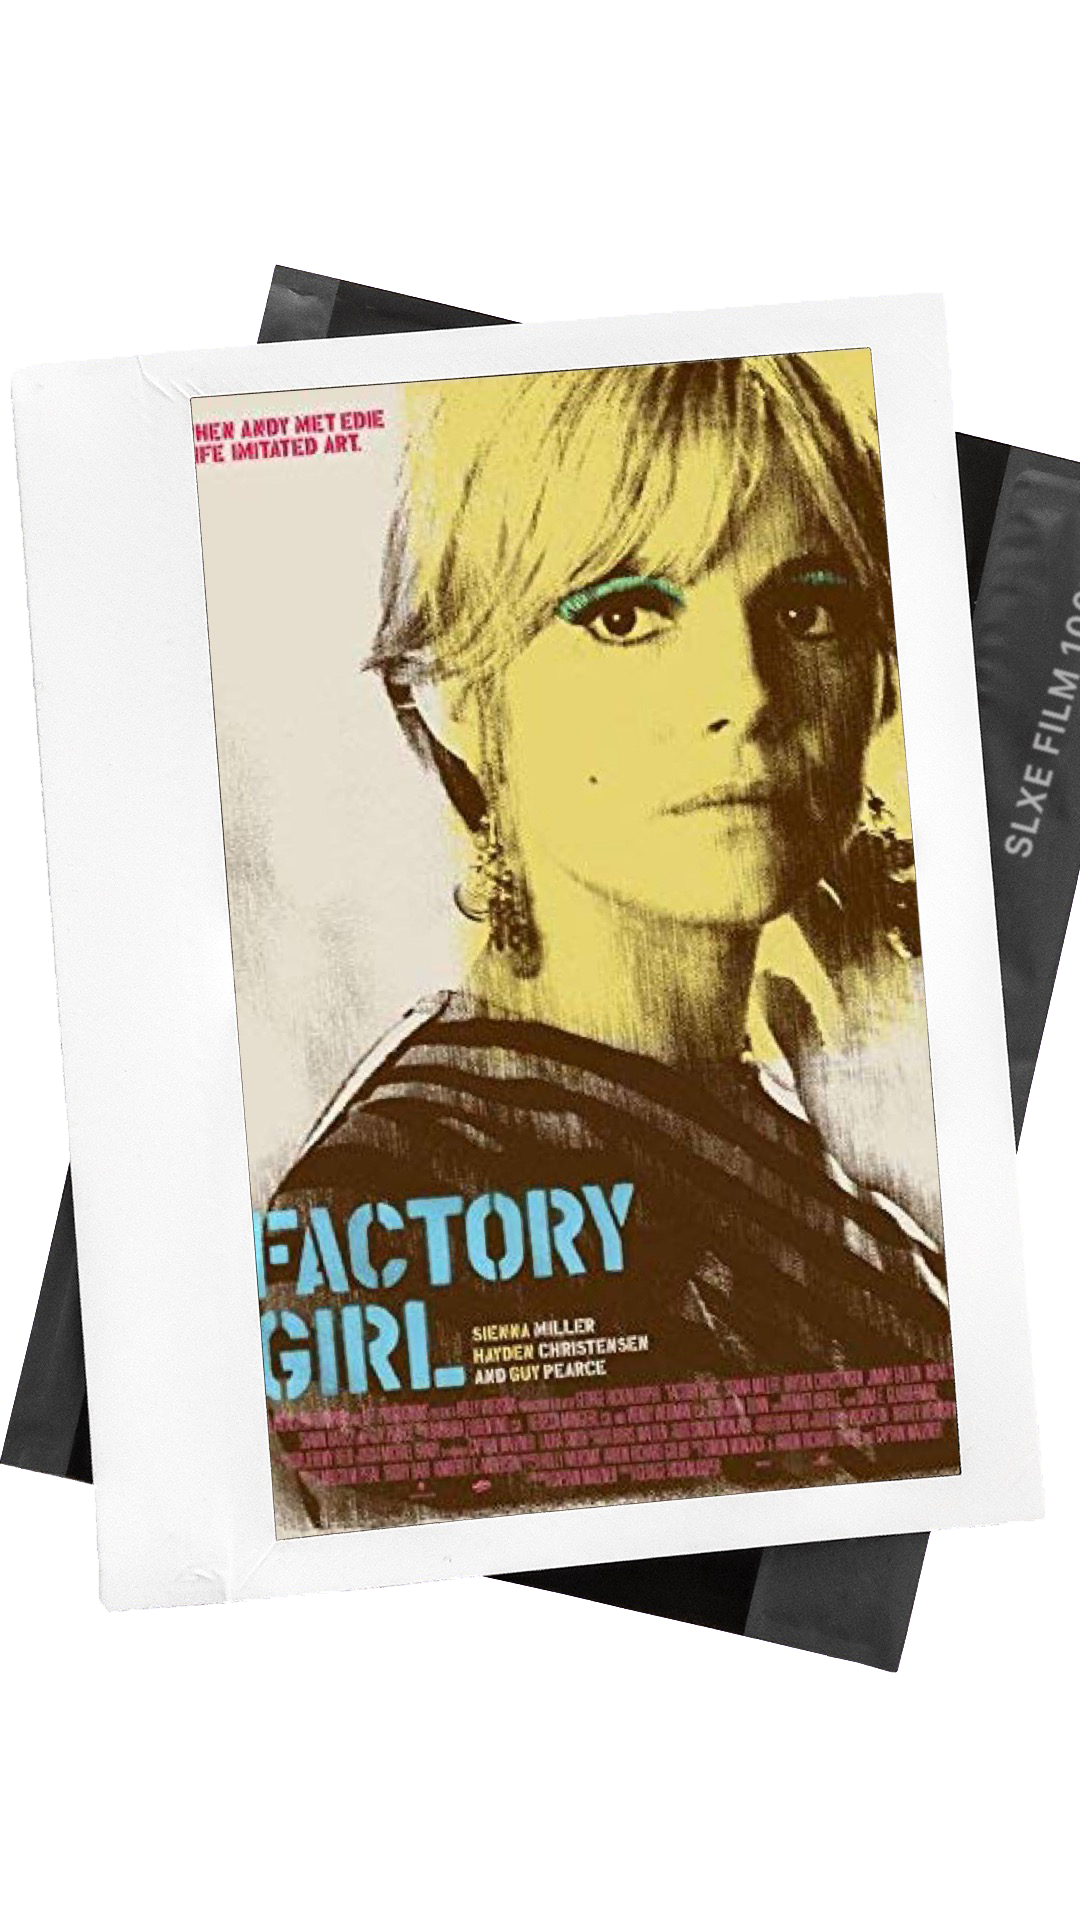 Factory Girl (a good aesthetic) - While the movie received negative reviews for the inaccuracy of events and portrayal of main characters, it is still definitely a must-watch for anyone who has ever been interested in the Andy Warhol circles. The movie is based on the story of Edie Sedgwick, a rising underground socialite who is known for her association with The Factory. Within the movie, you'll find characters like Lou Reed, Nico, Diane Vreeland or Bob Dylan.